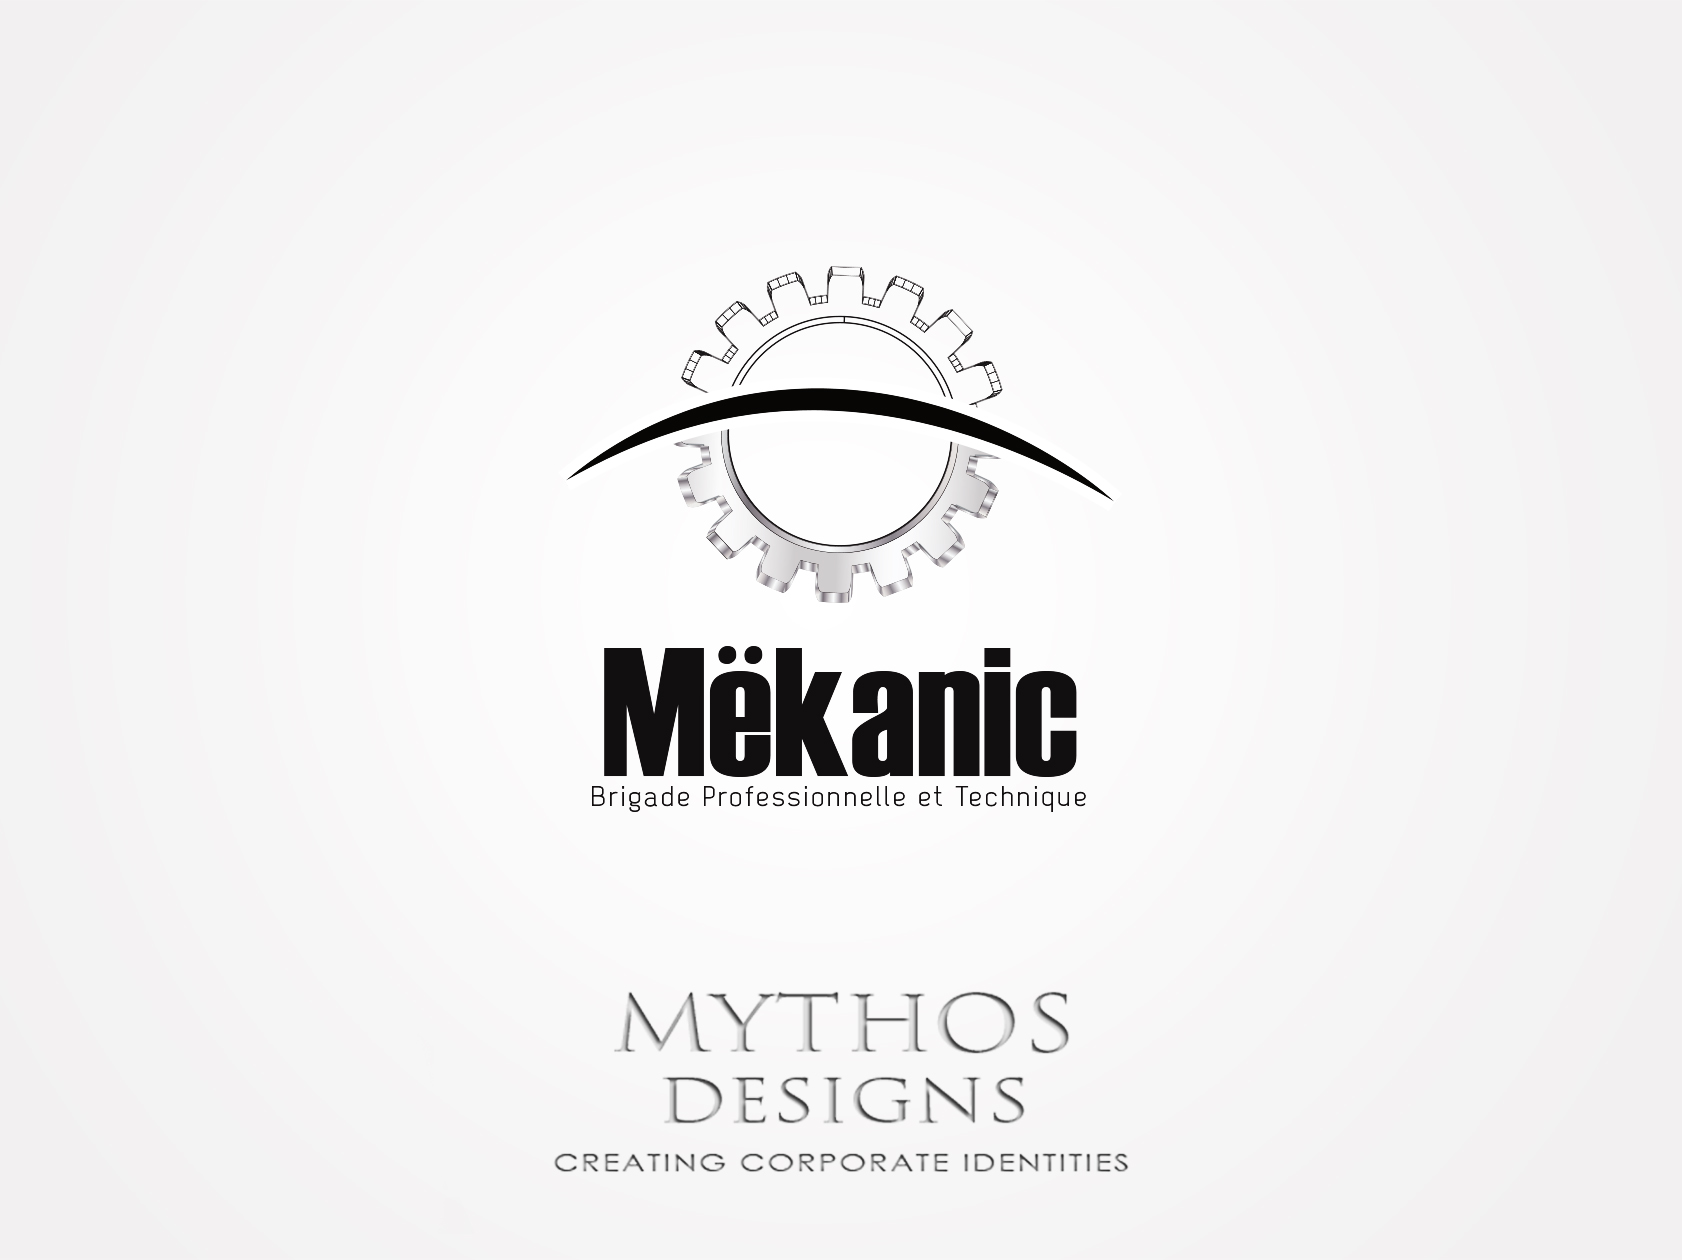 Logo Design by Mythos Designs - Entry No. 180 in the Logo Design Contest Creative Logo Design for MËKANIC - Professional and technical squad.